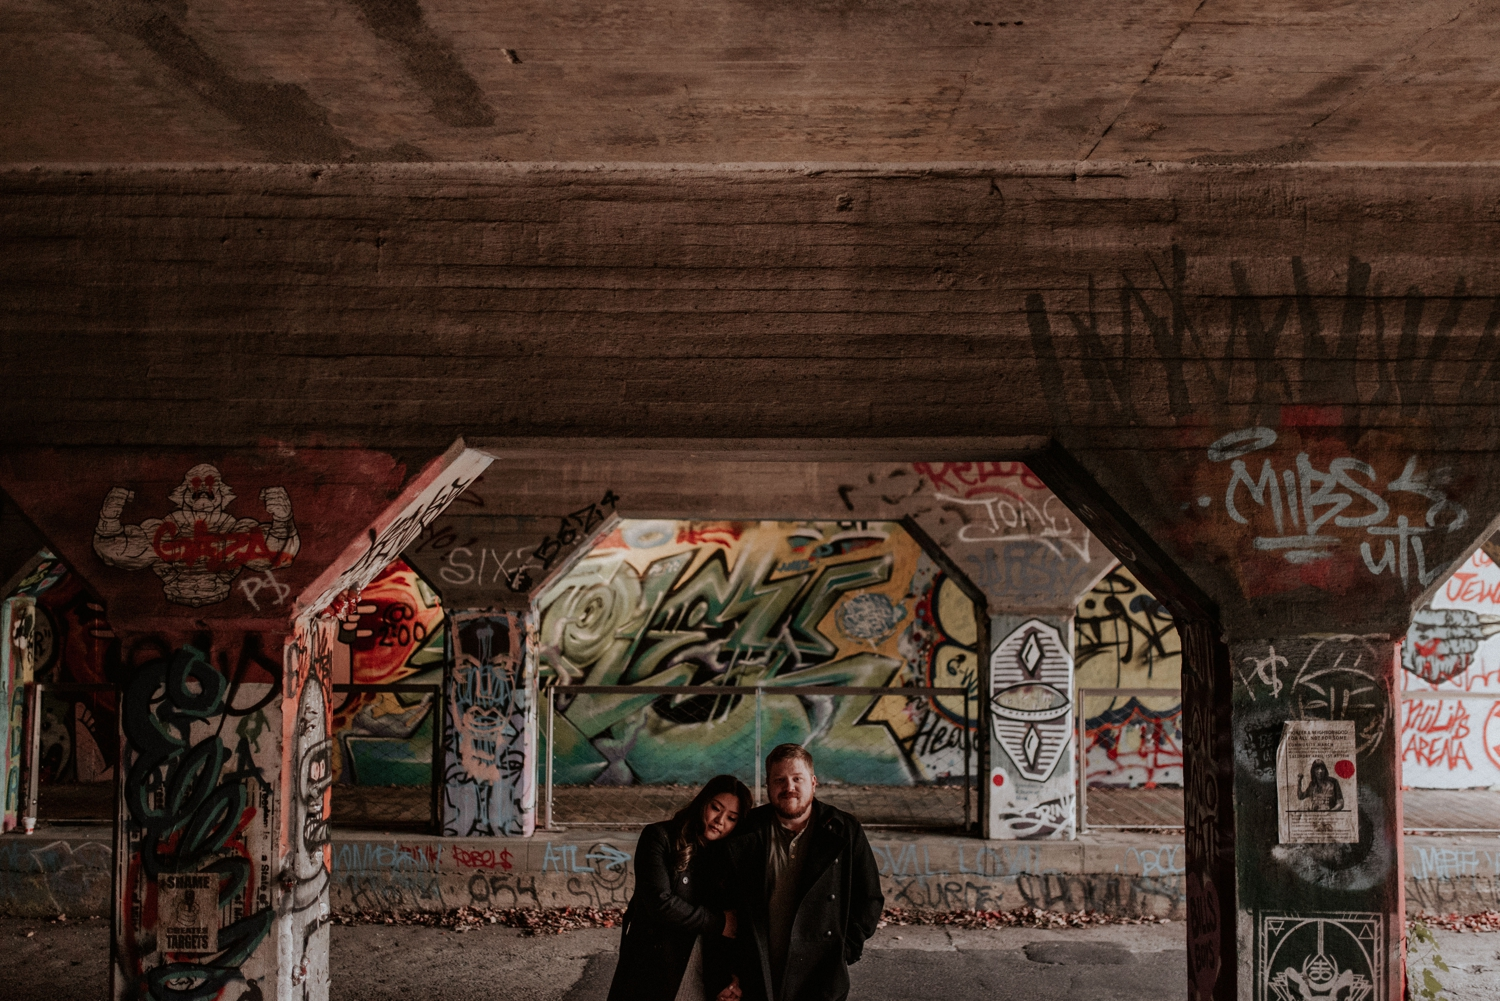 krog_tunnel_engagement_session_atlanta_wedding_photographers19.jpg